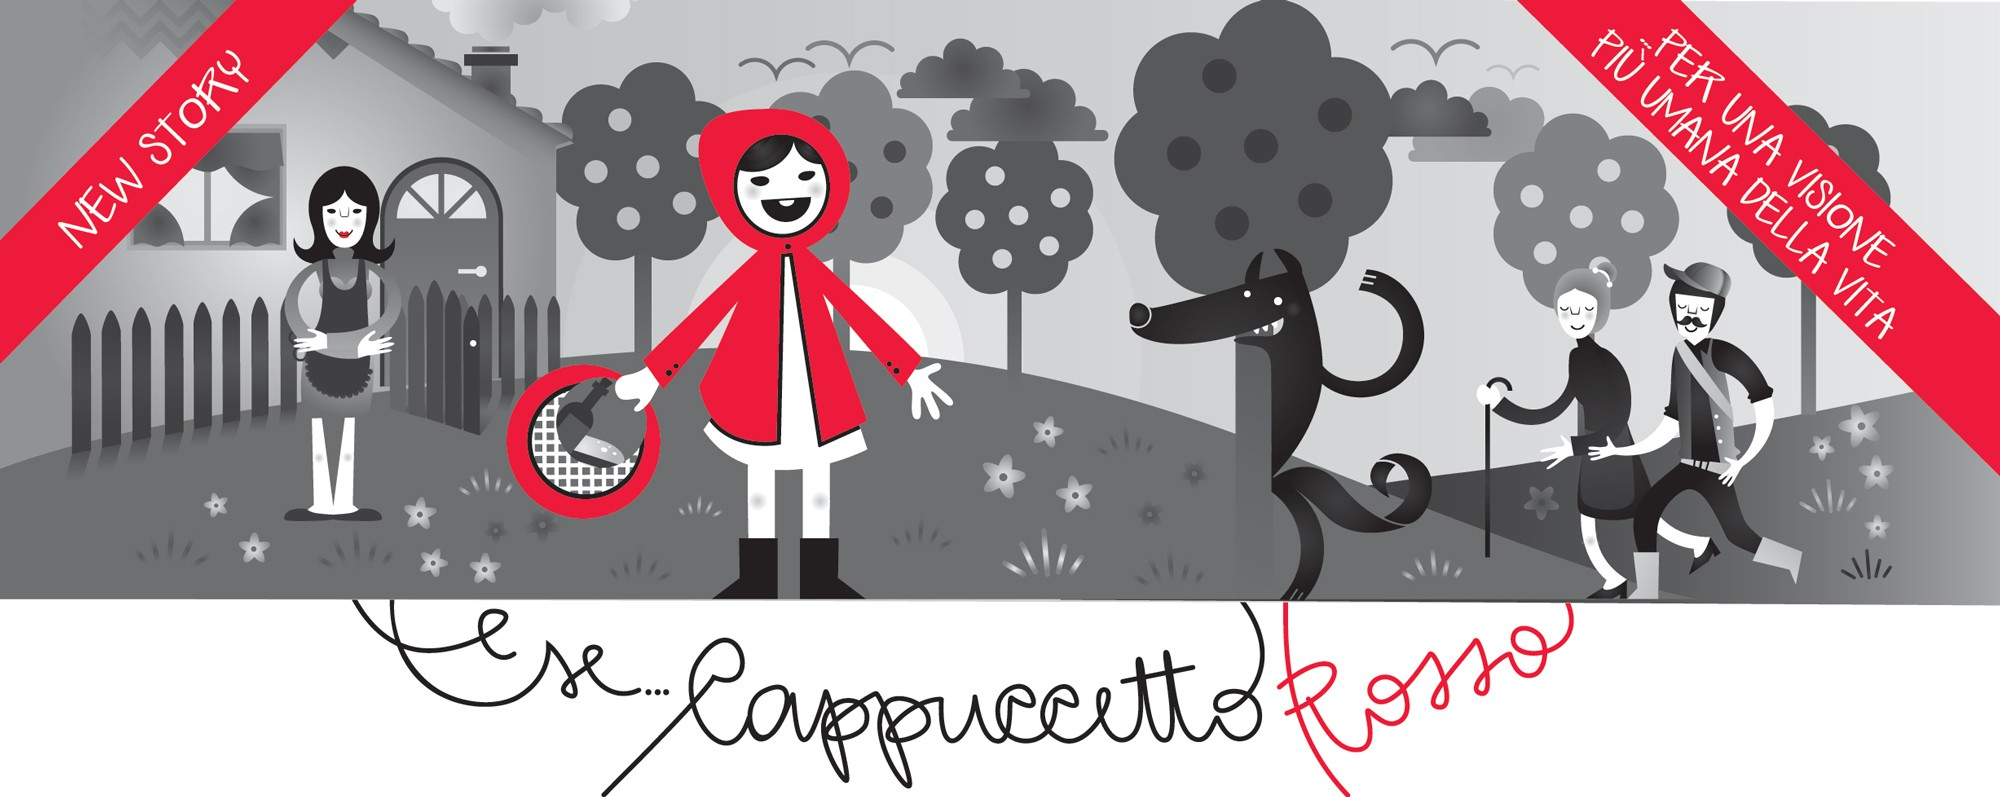 E se Cappuccetto Rosso – if Little Red Riding Hood